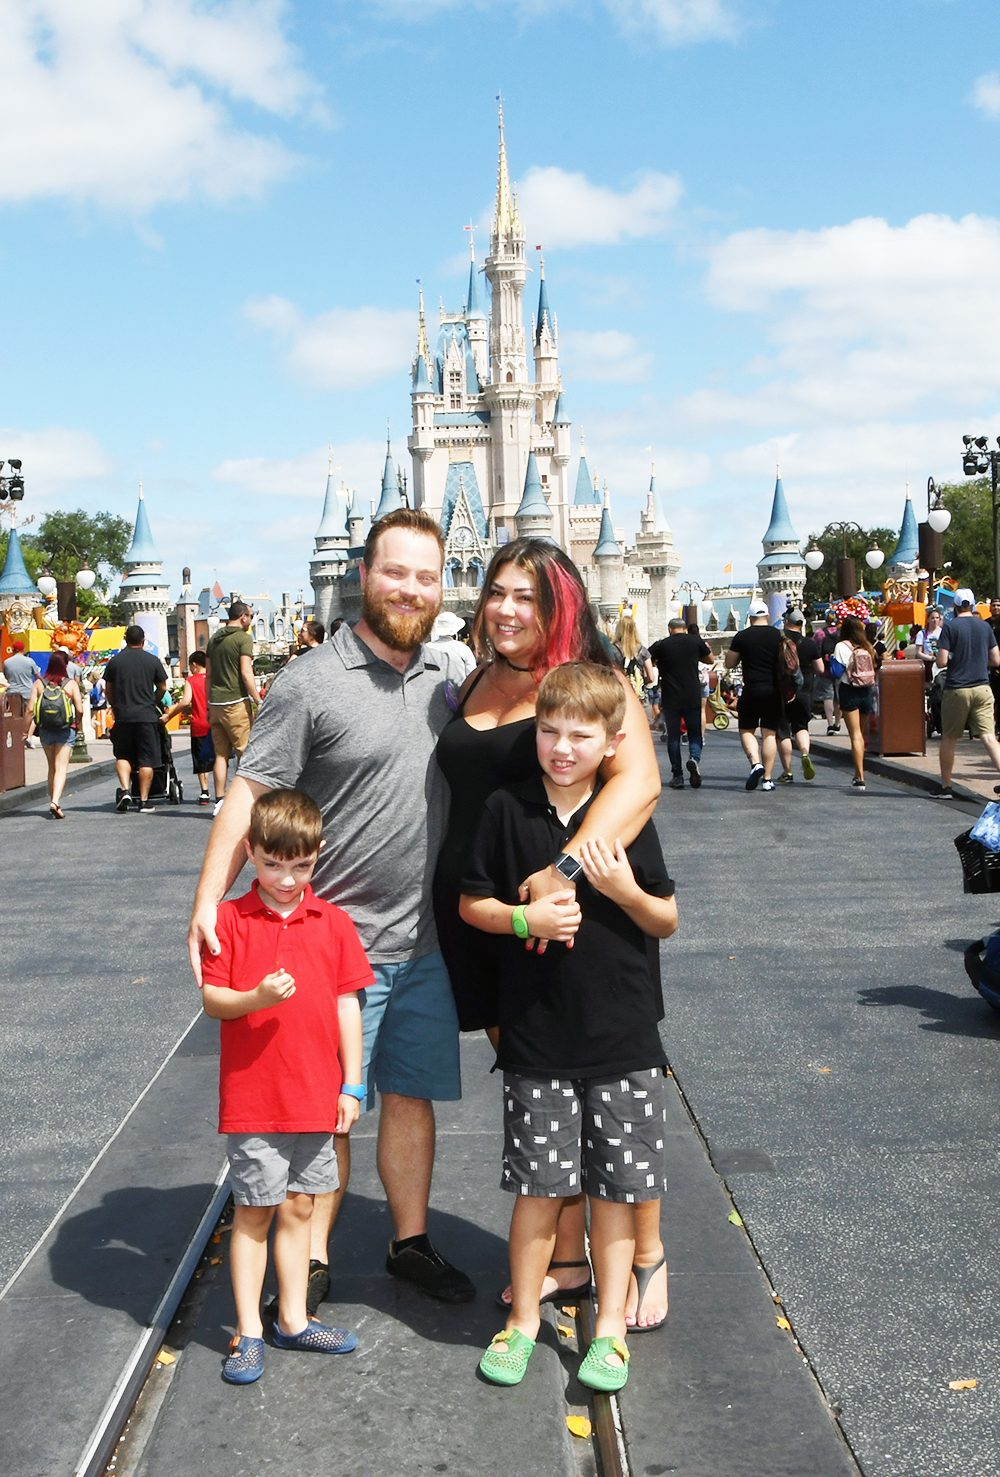 The Kobilka Family at Disney 2019 - Techmomogy